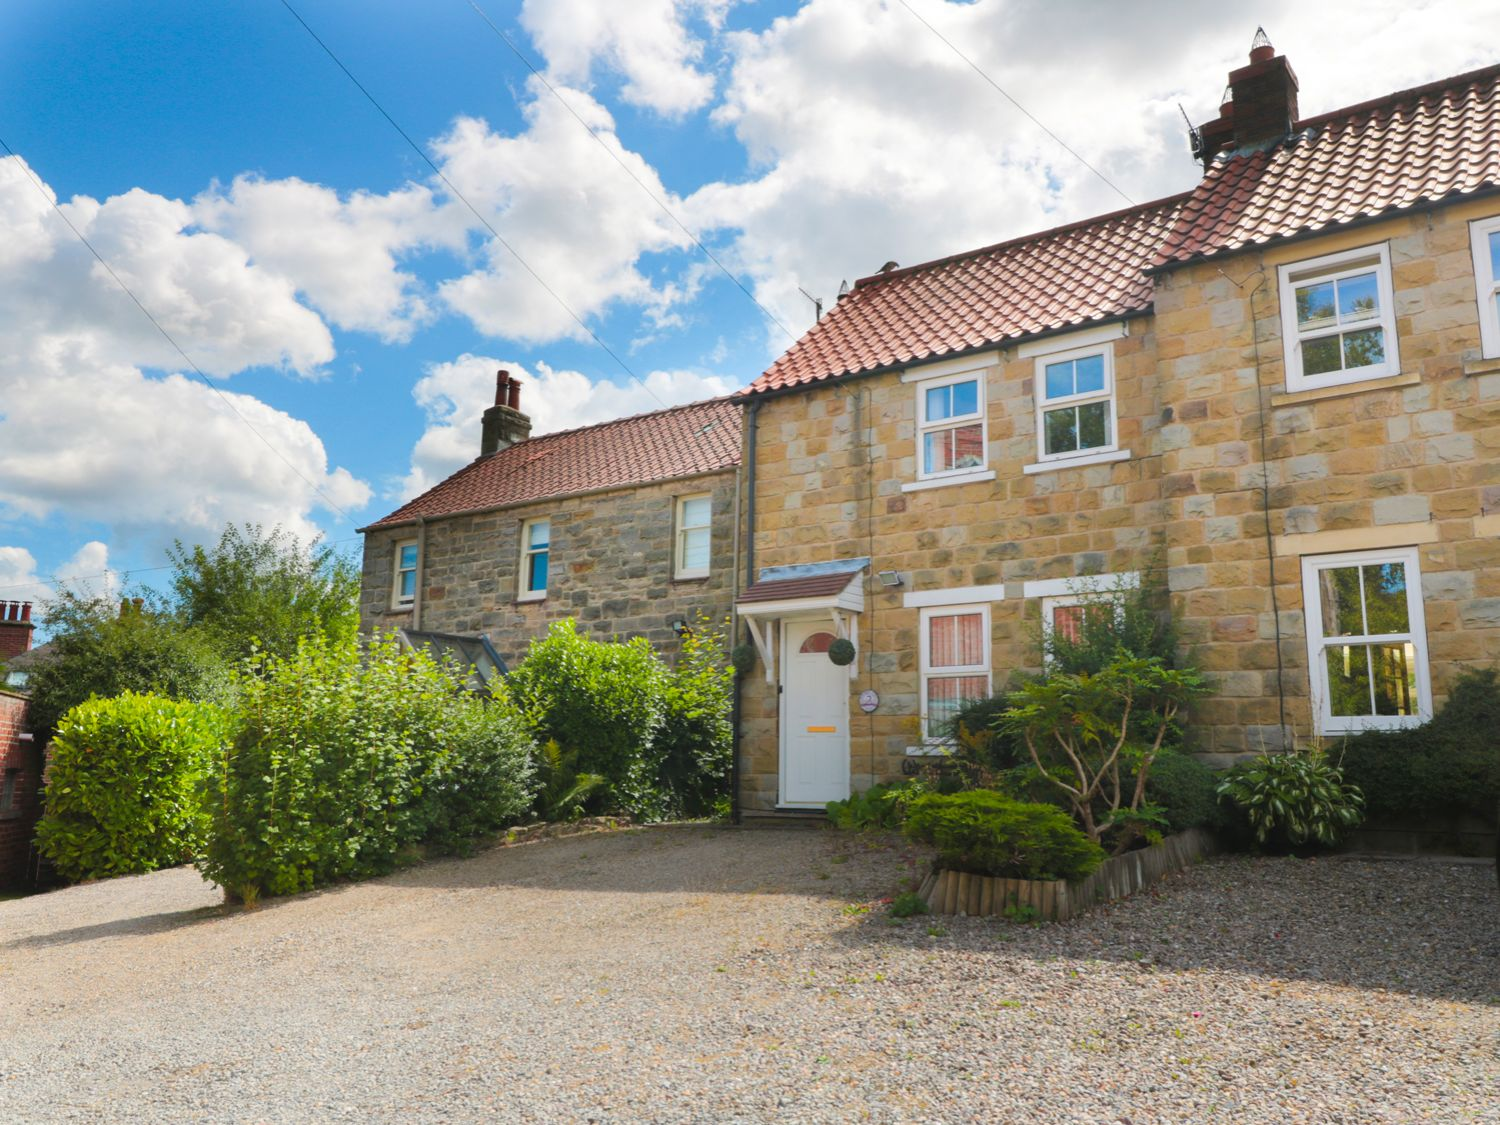 2 Ramblers Court - Whitby & North Yorkshire - 989923 - photo 1